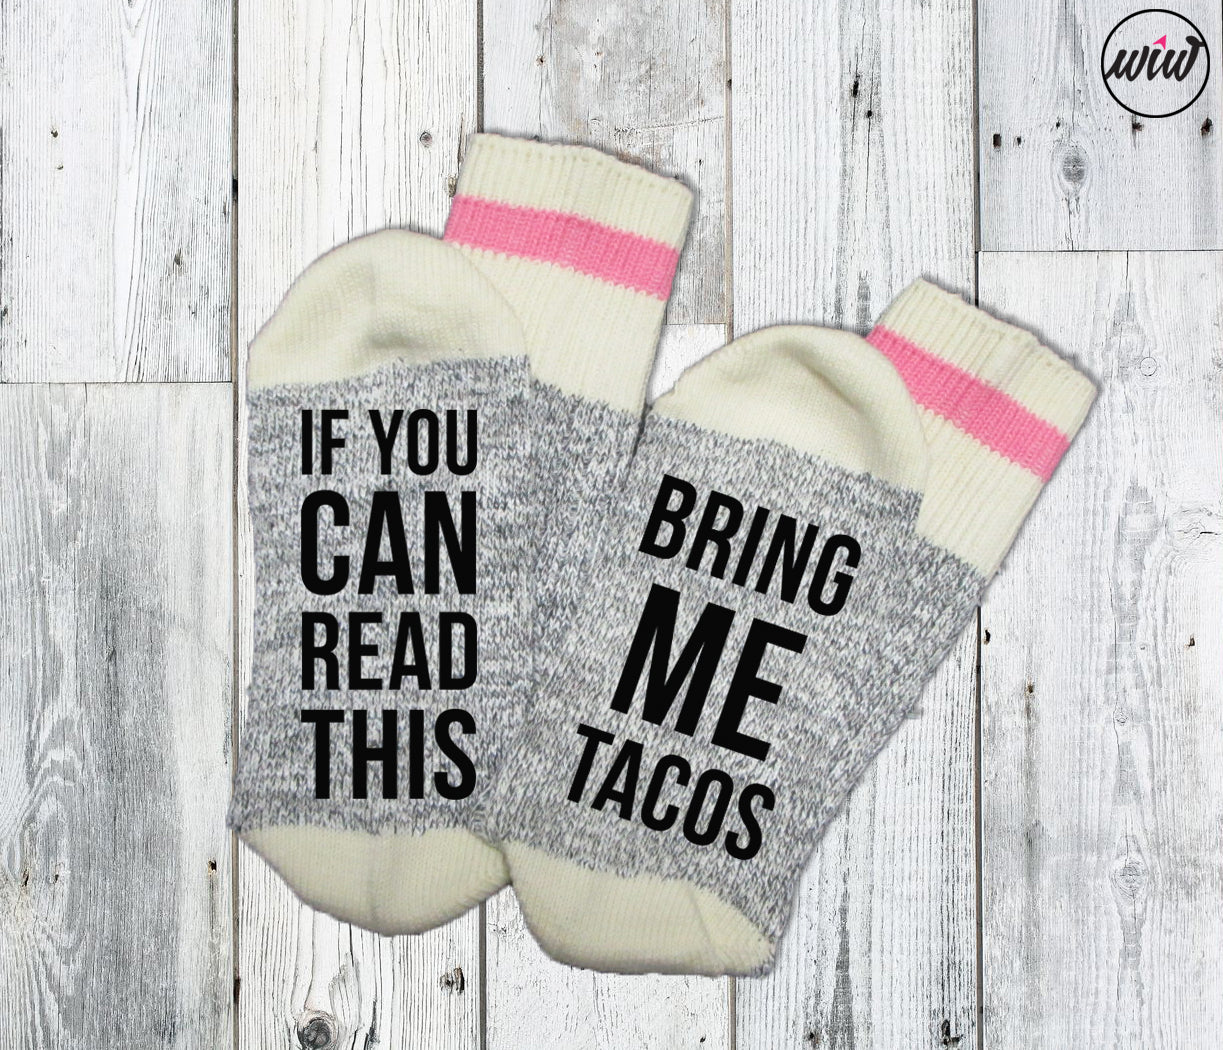 If You Can Read This Bring Me Tacos. Funny Socks. Taco Socks. Word Socks. Feed Me Tacos. Stocking Stuffers. Socks With Sayings.